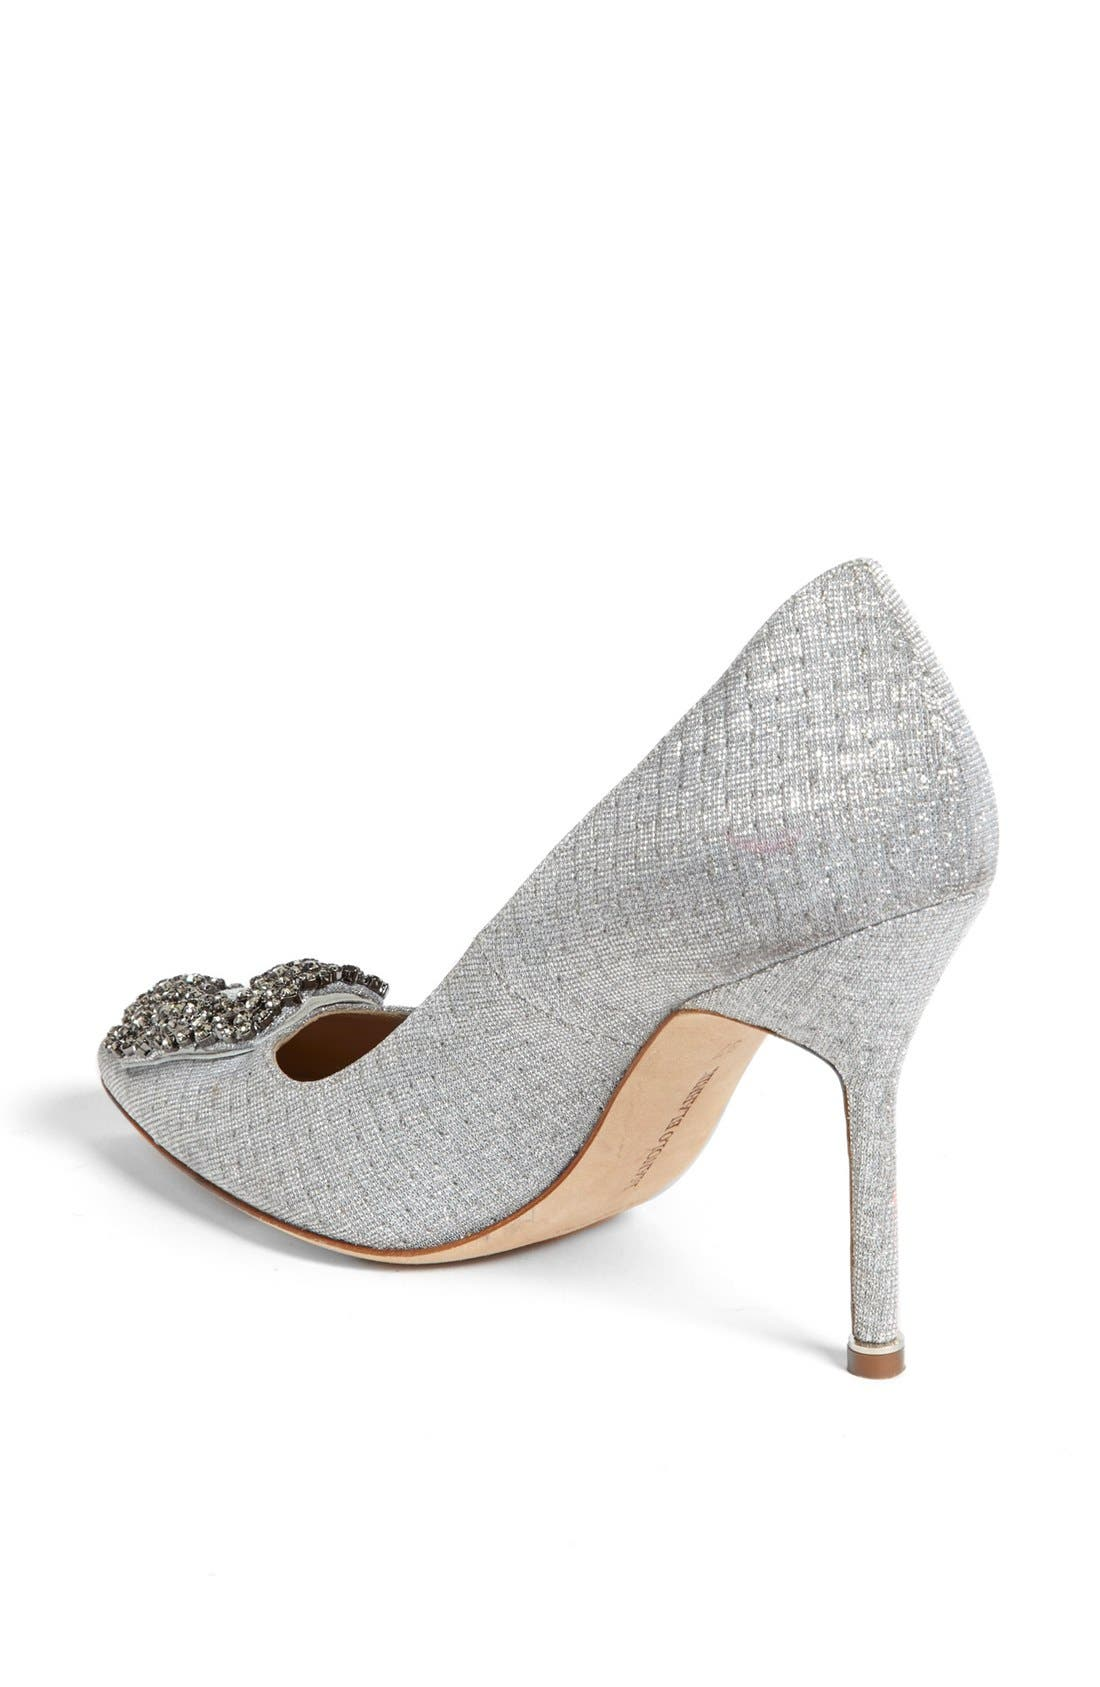 'Hangisi' Jeweled Pump,                             Alternate thumbnail 2, color,                             SILVER